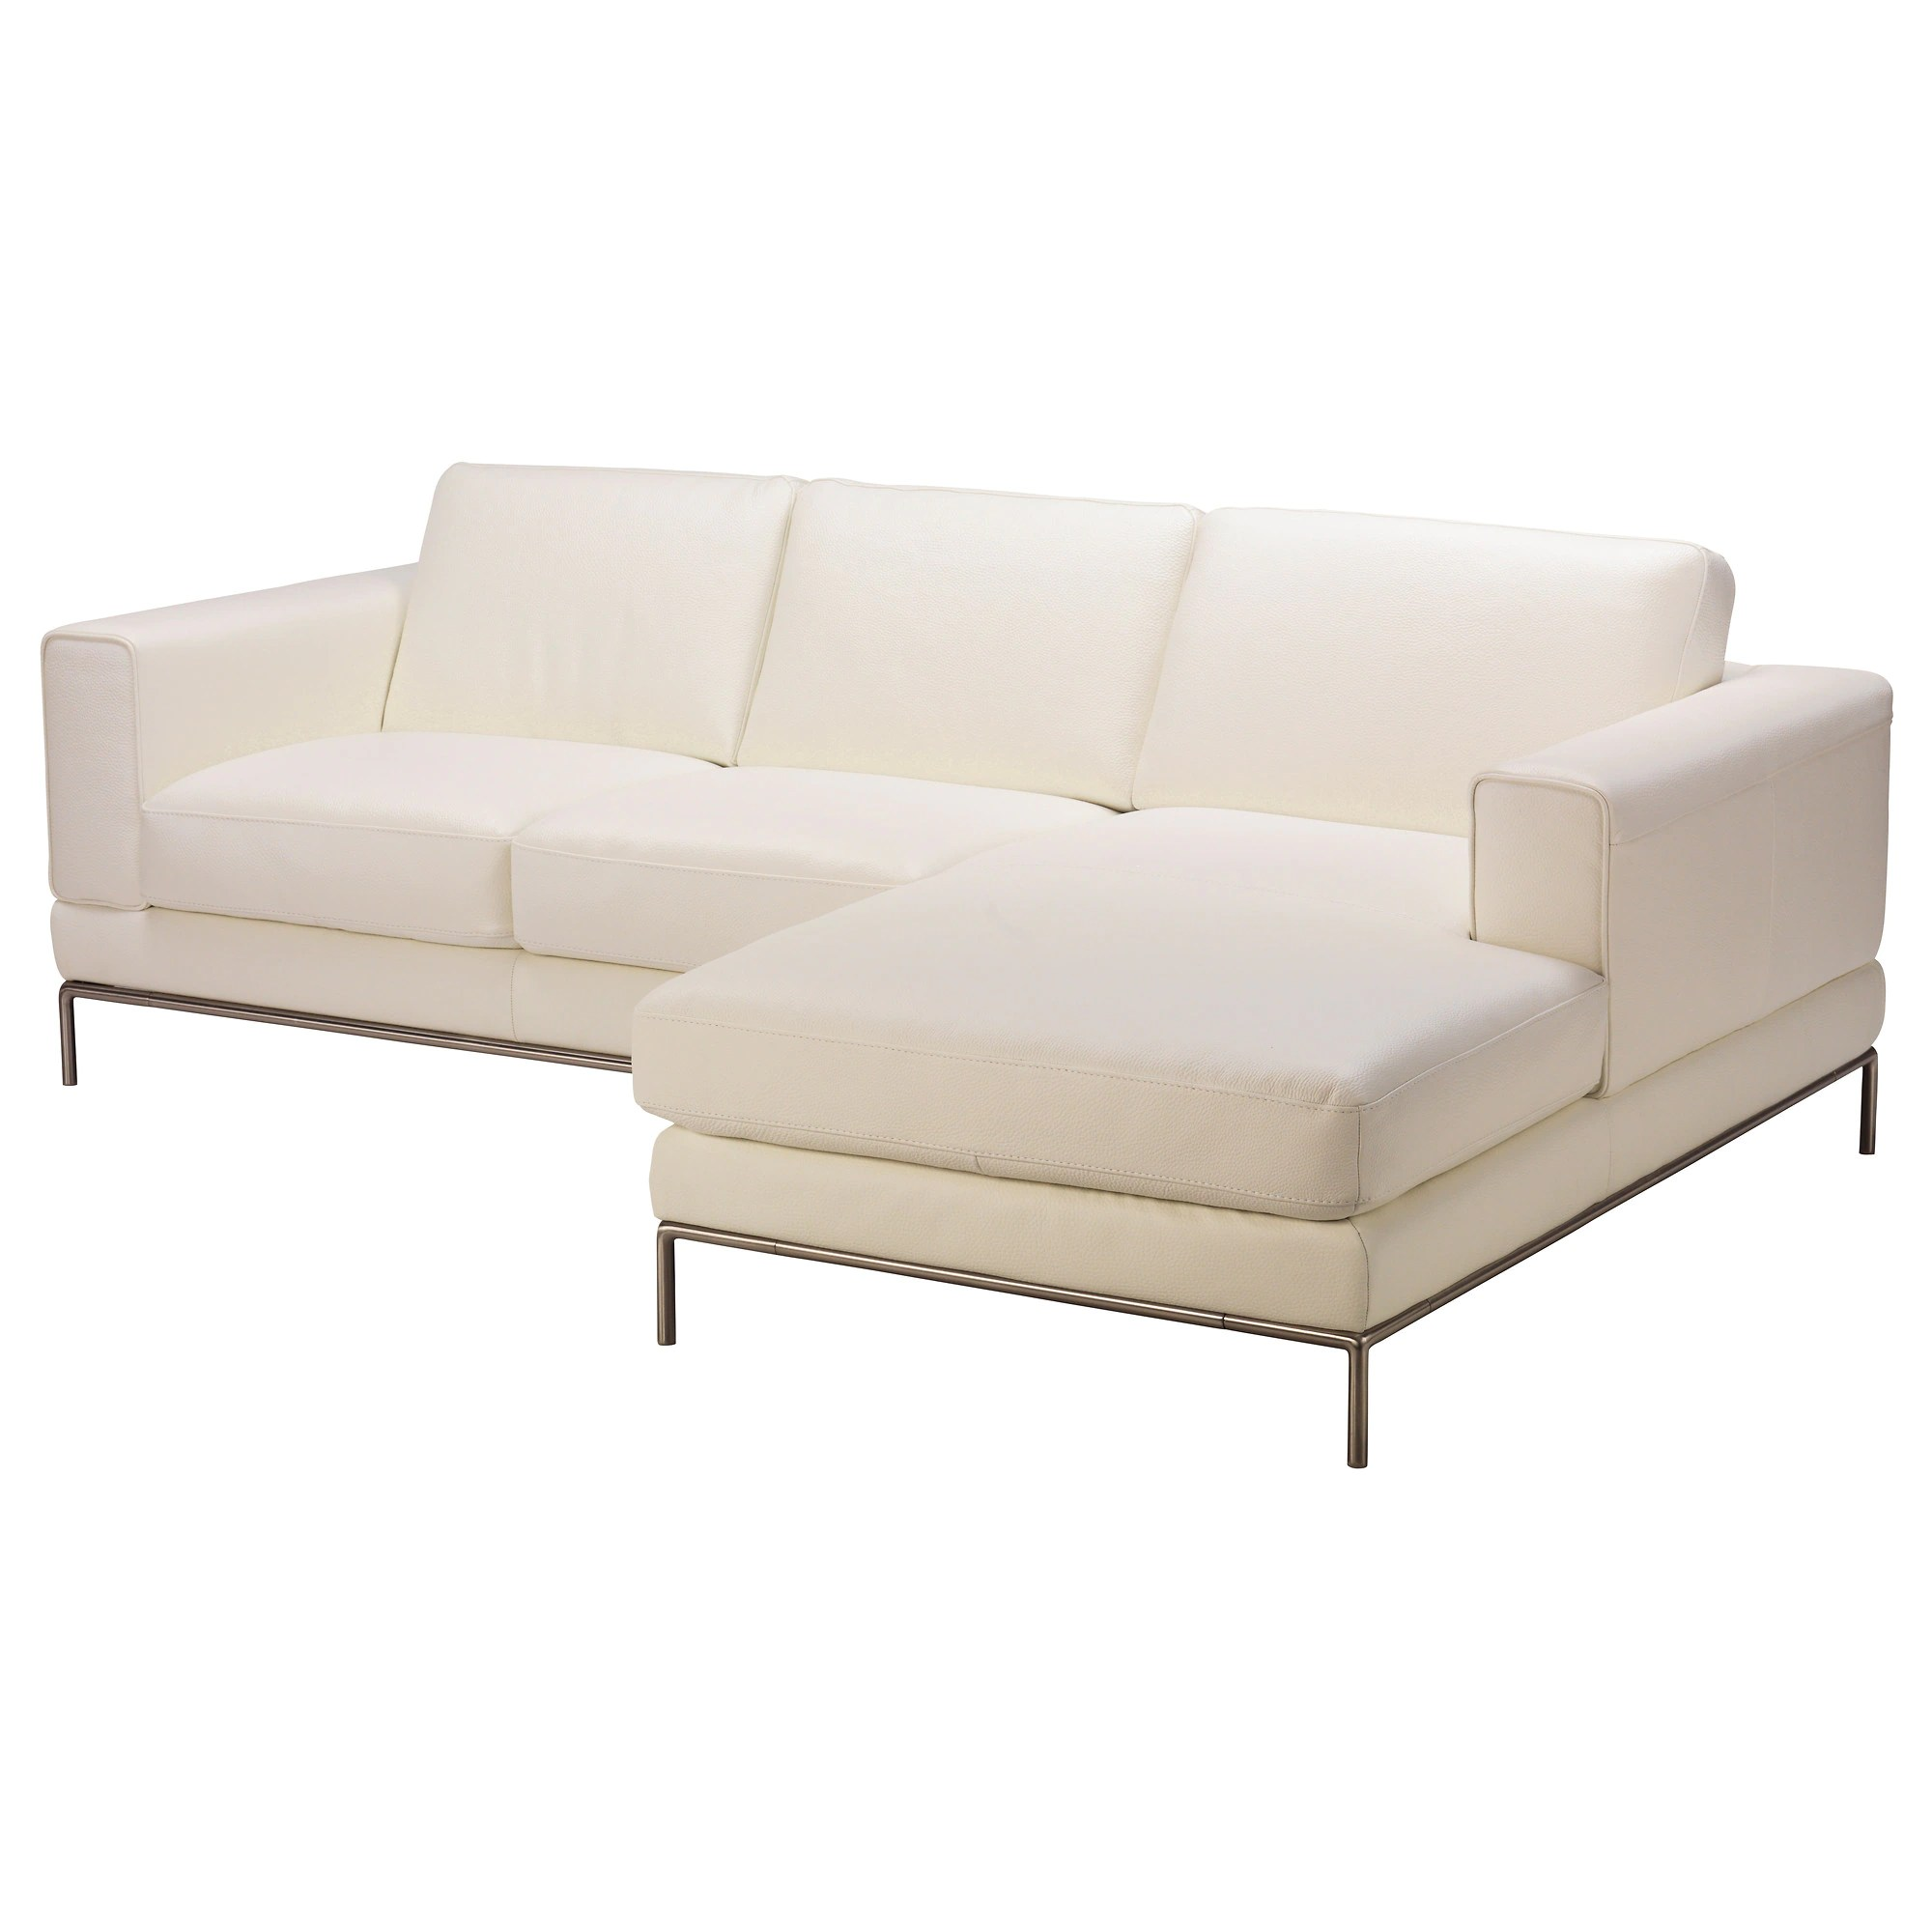 Chaiselongue Recamiere Arild 2 Seat Sofa W Chaise Longue Right Grann White